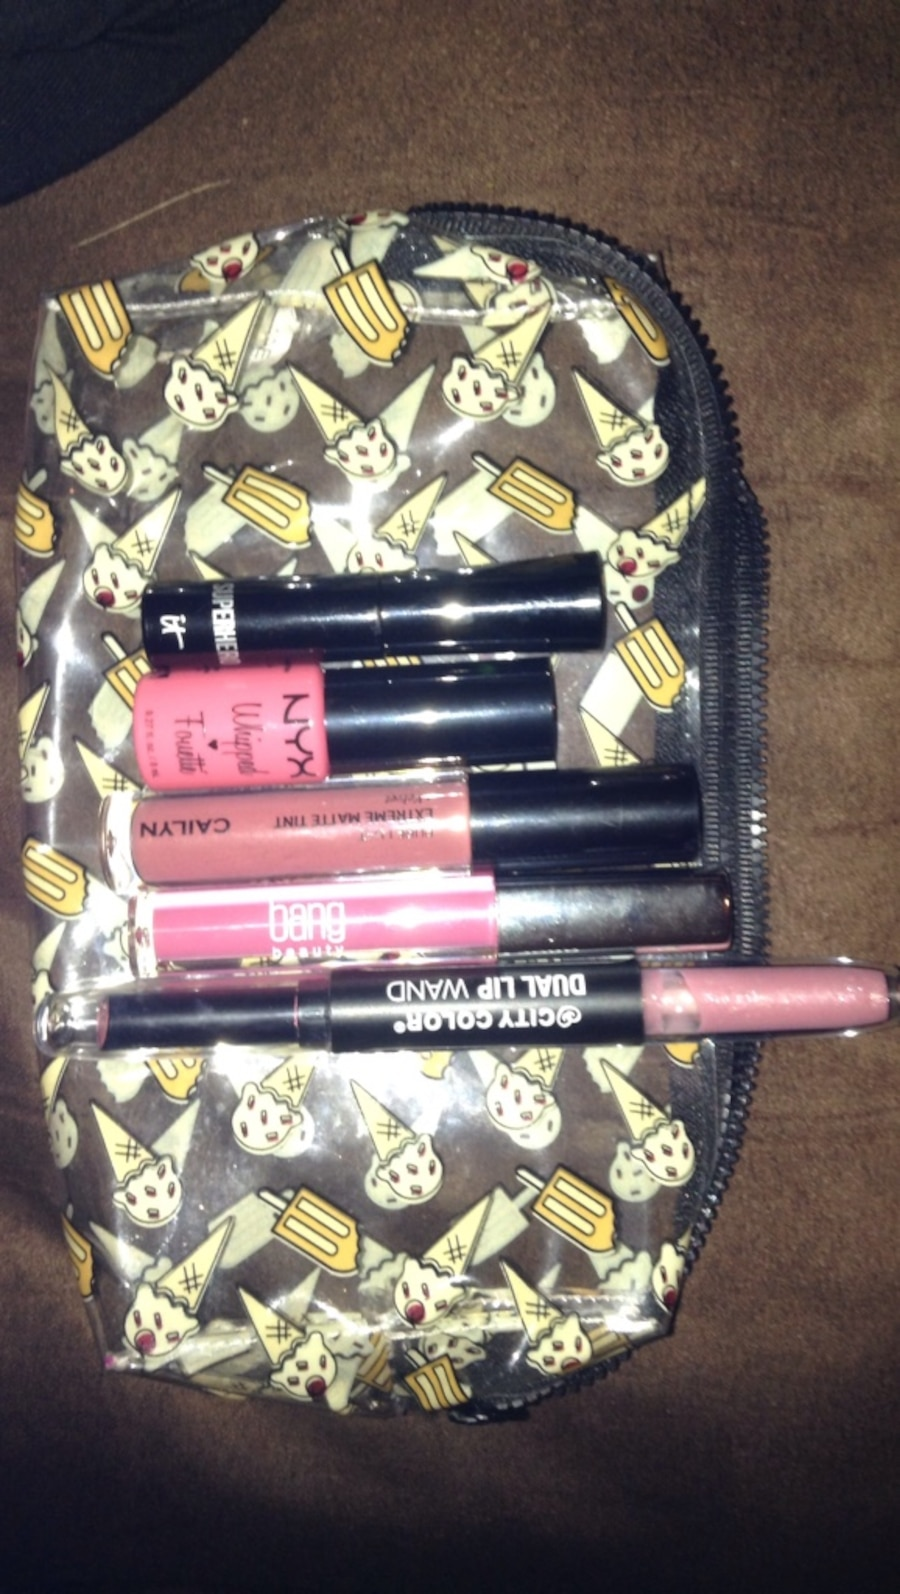 All lip products (5 of them)